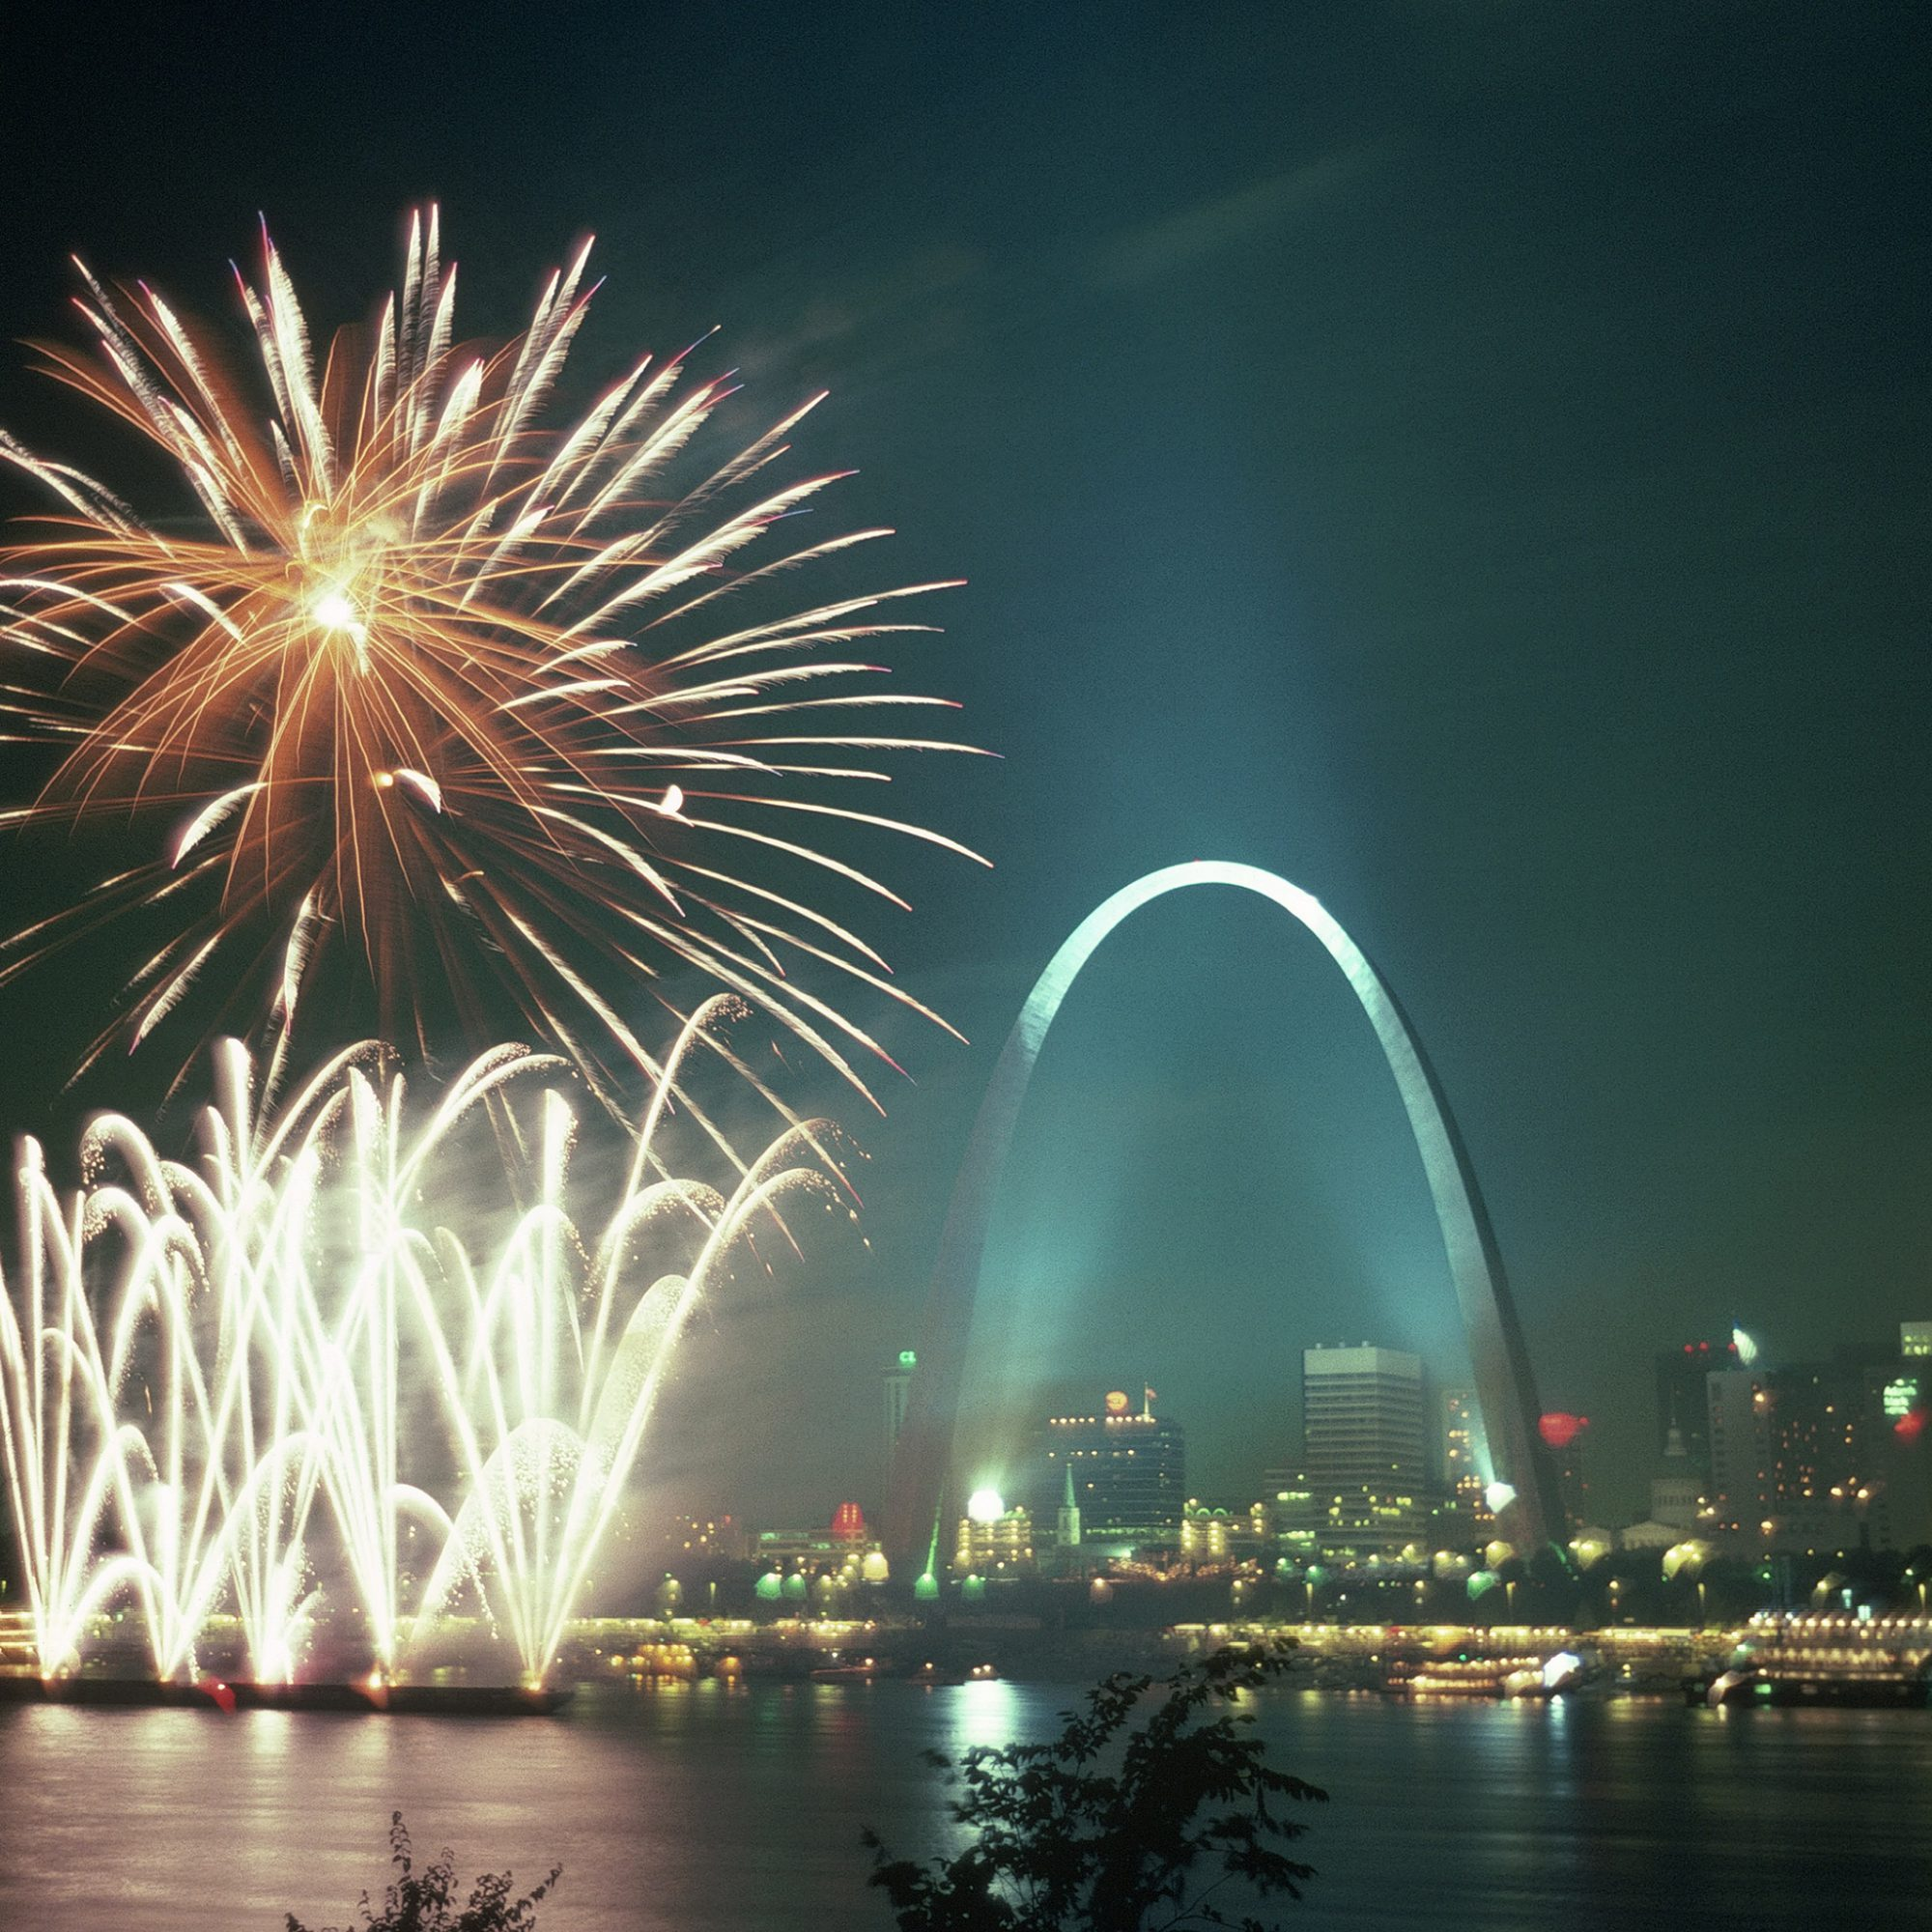 Fireworks, Fourth of July, St. Louis